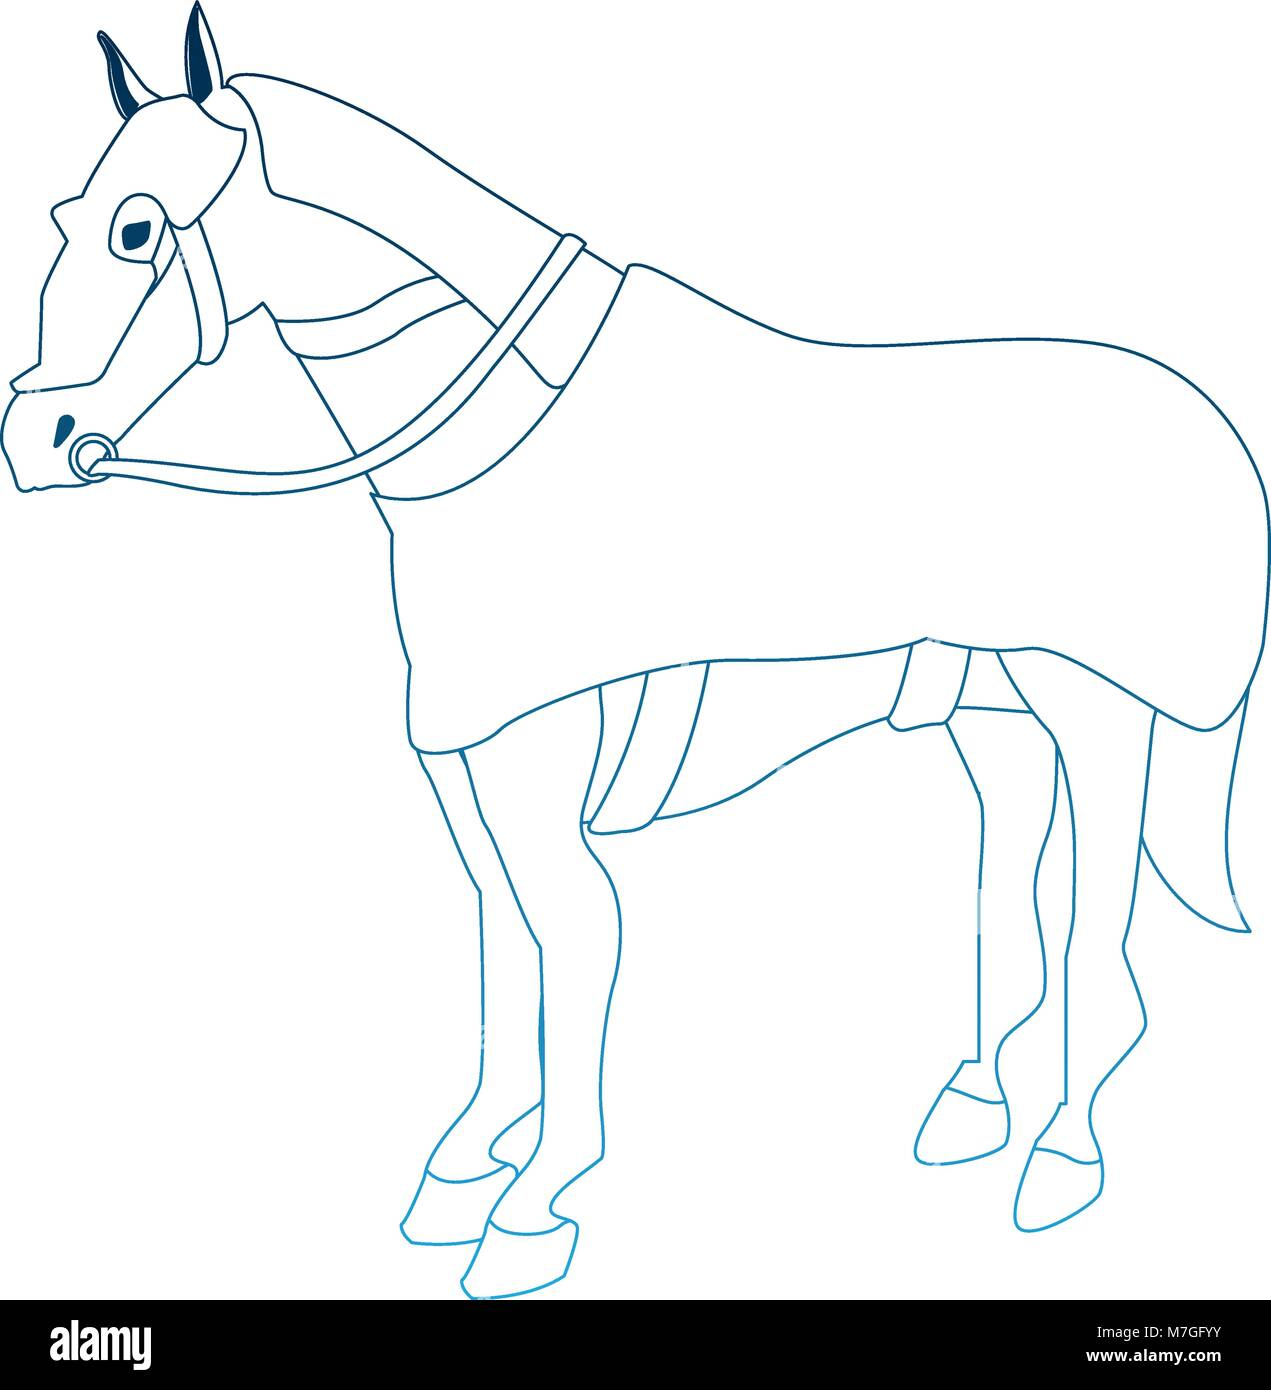 Horse With Medieval Armour Vector Illustration Graphic Design Stock Vector Image Art Alamy